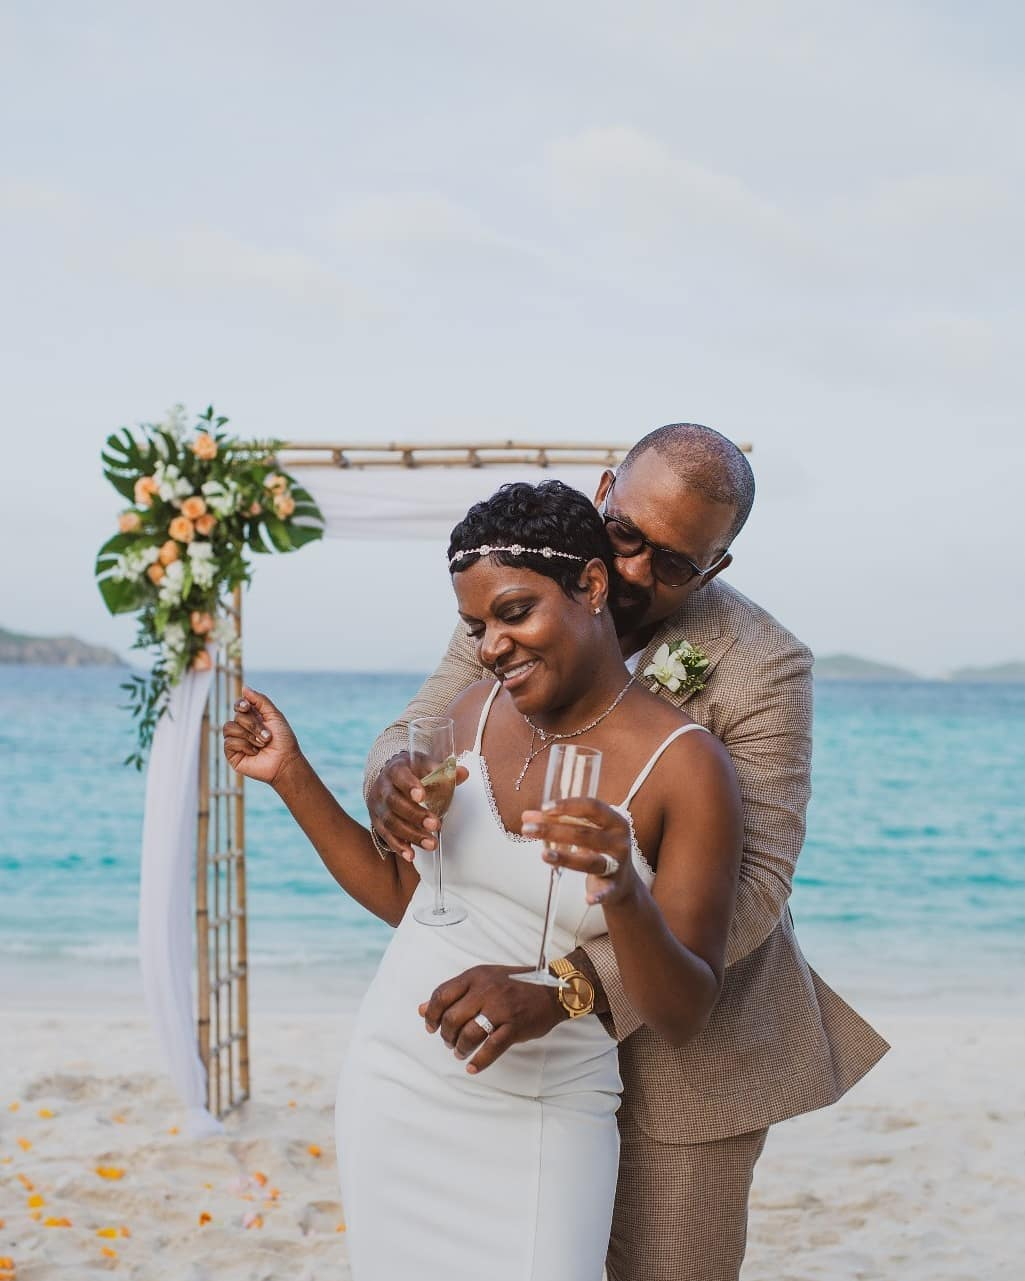 Loving this sweet candid moment caught by @brookeheikkila_photographer Lindquist Beach once again giving is a beautiful backdrop and those flowers from @eastendflowershop giving us a lovely pop of color.